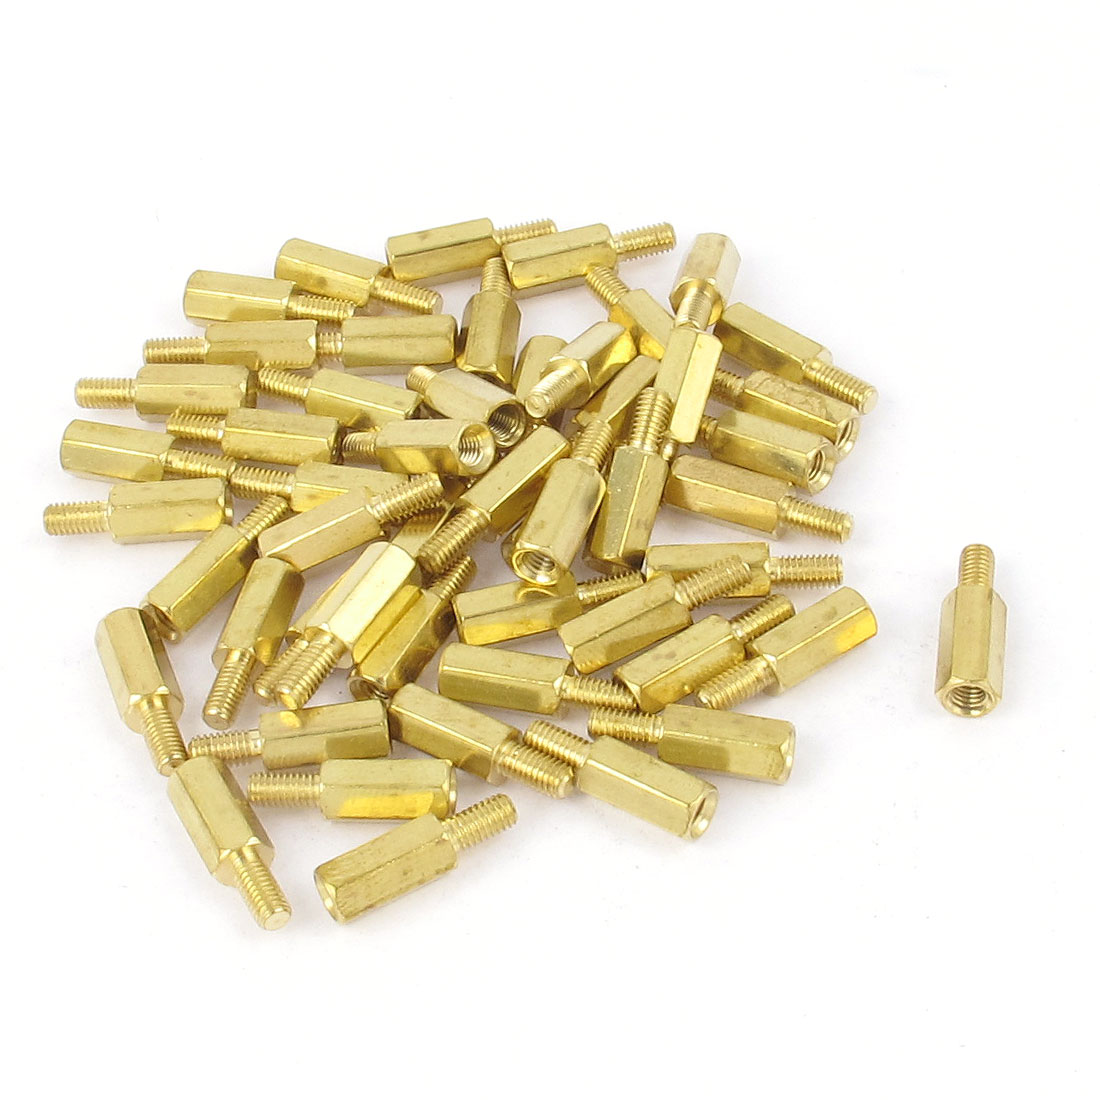 50pcs M3 10mm+6mm Female to Male Hexagonal Nut Brass Standoff Spacer Pillar for PCB Motherboard